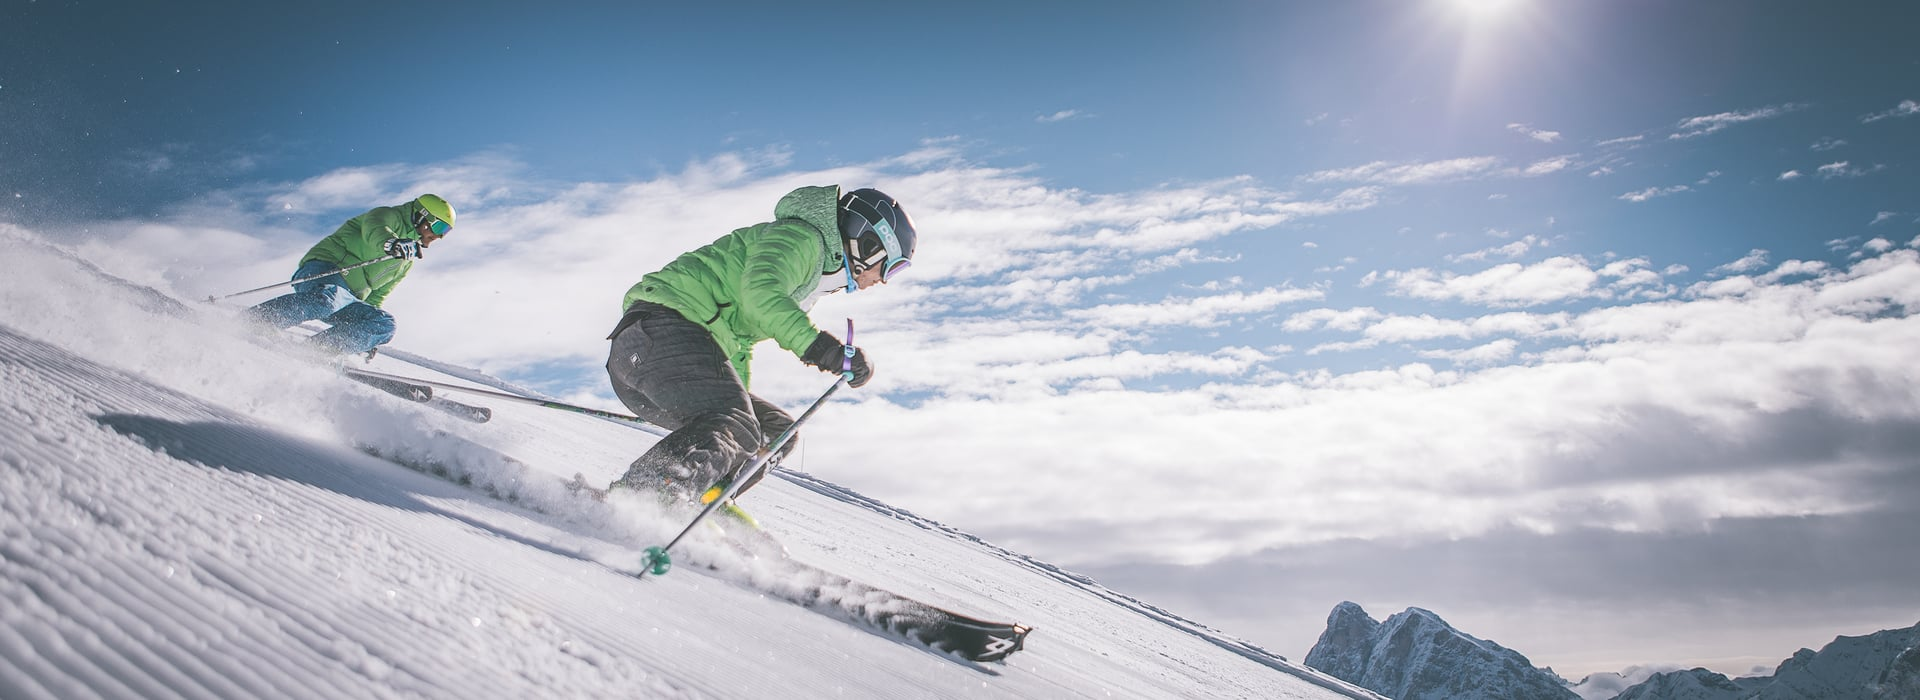 Skiing is a joy – pure and simple